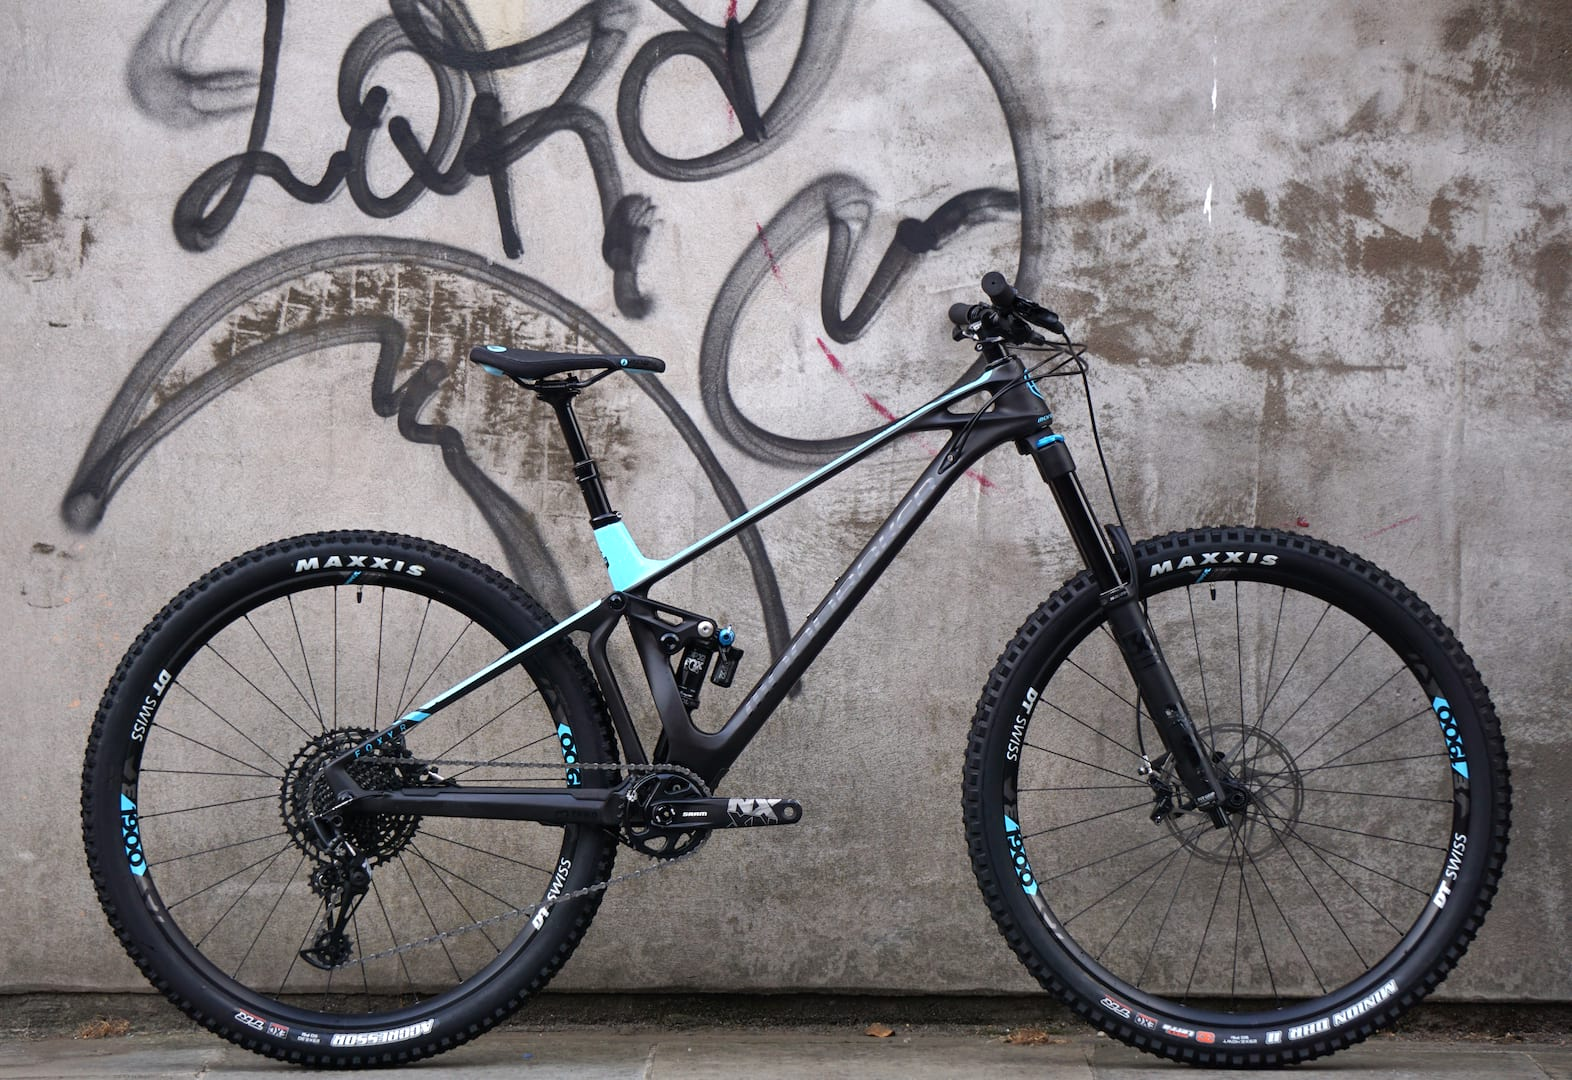 Mondraker Foxy R 29 Review - Don t read this review if you don t ... 31ba850cc